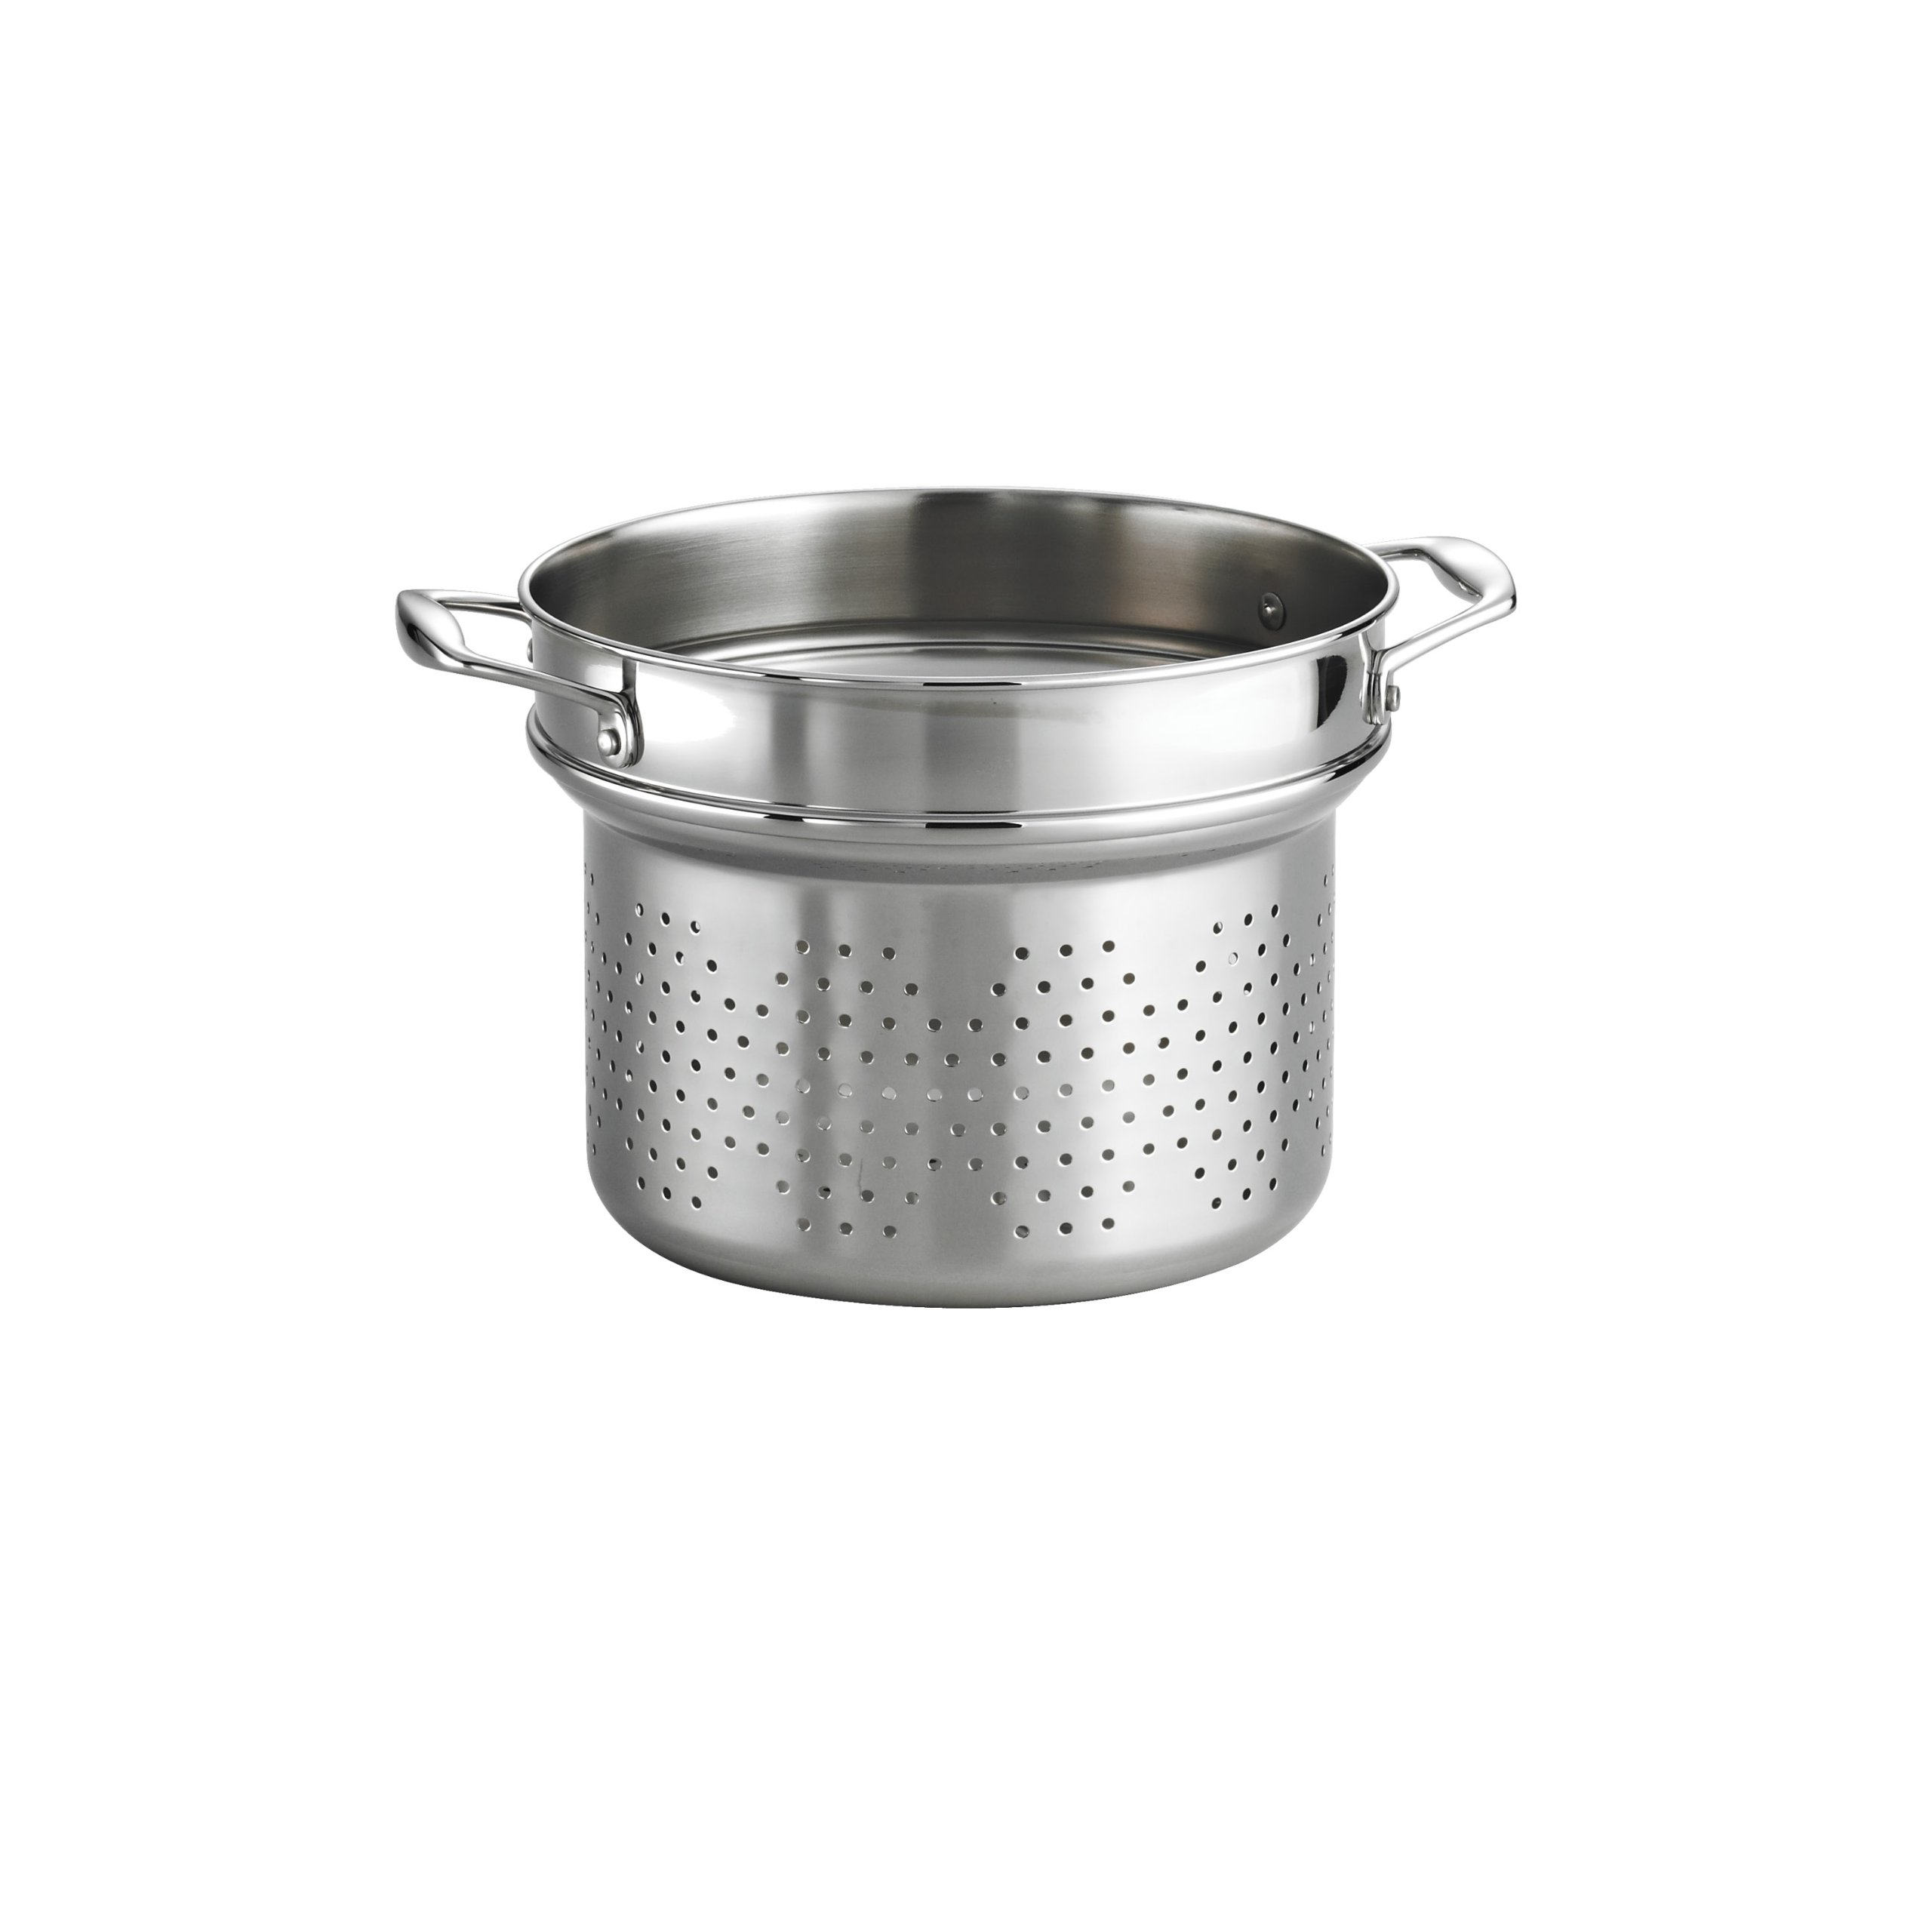 Tramontina 80116/034DS Gourmet Premium 18/10 Stainless Steel Tri-Ply Clad Pasta Insert (Fits 8-Qt)